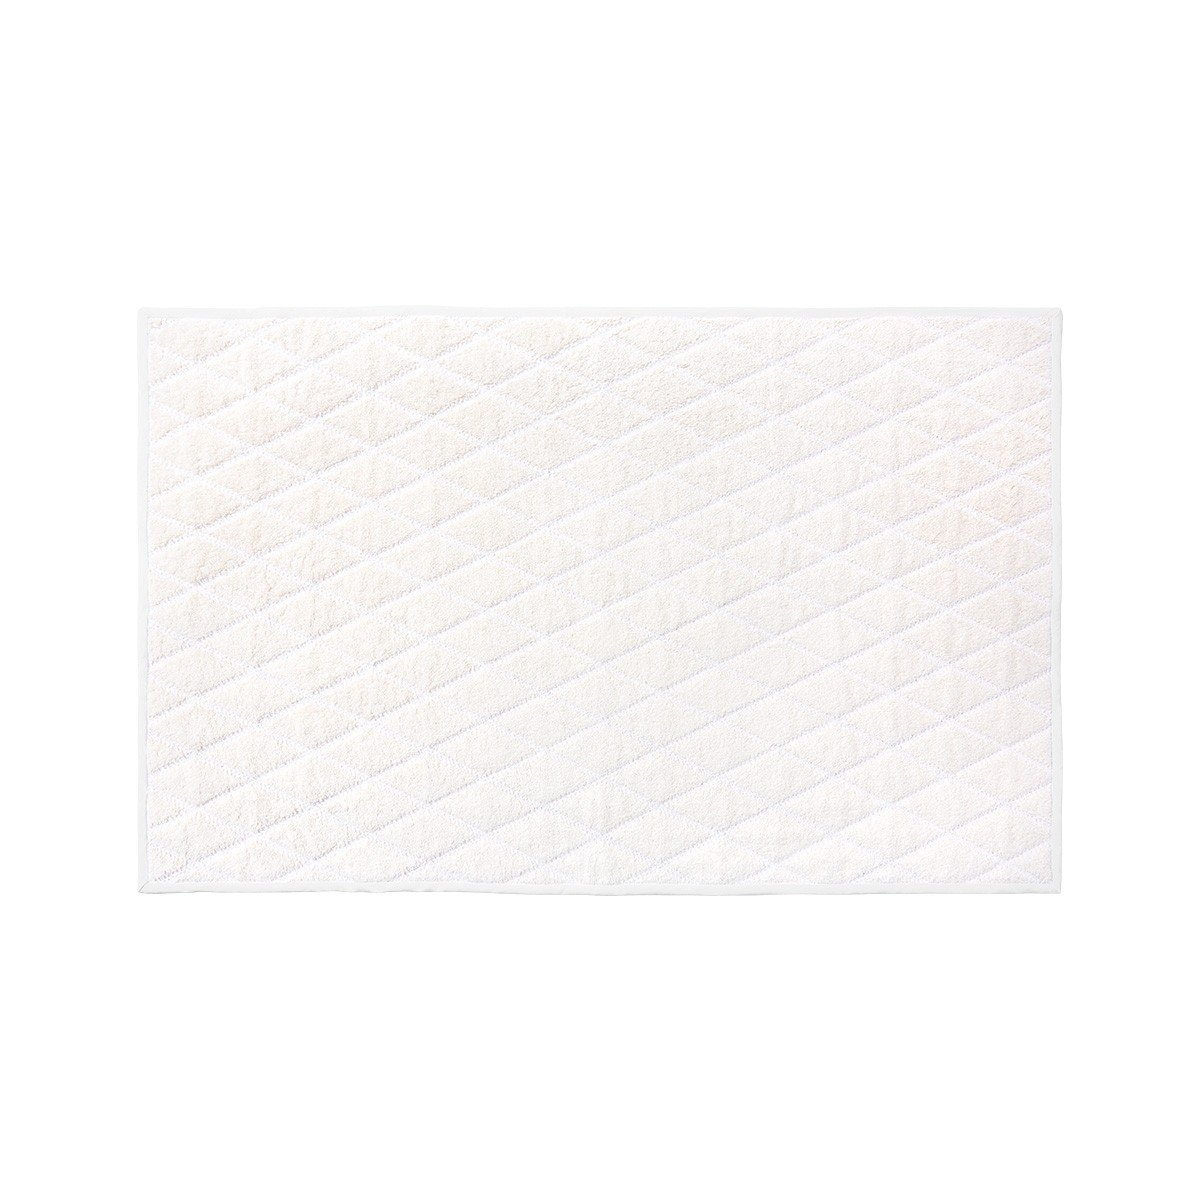 Adagio Perle Bath Collection by Yves Delorme | Fig Linens - Ivory Bath Linen Bathmat